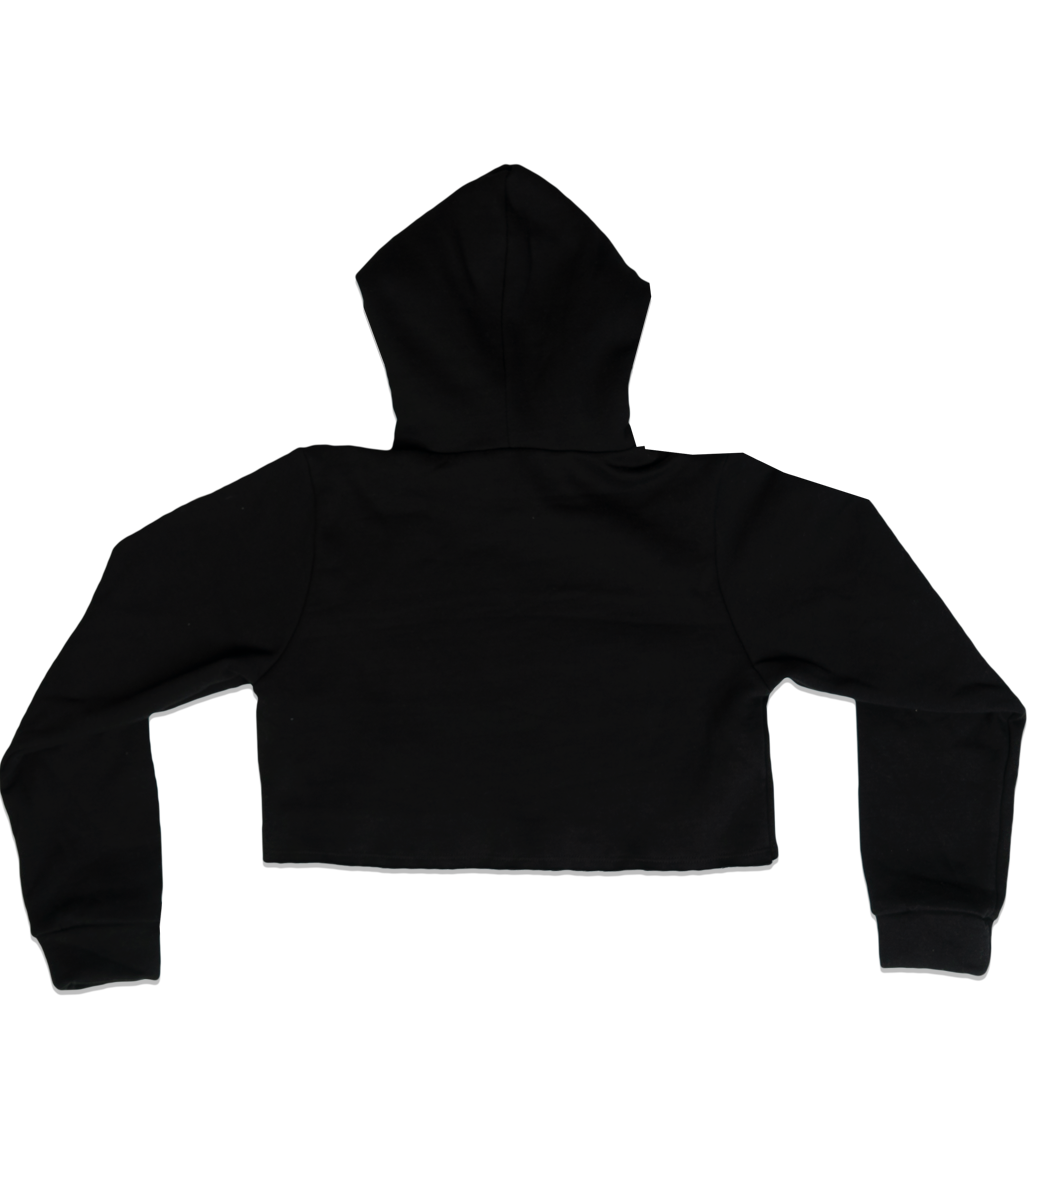 INGLEWOOD CROP TOP HOODIE BLACK.